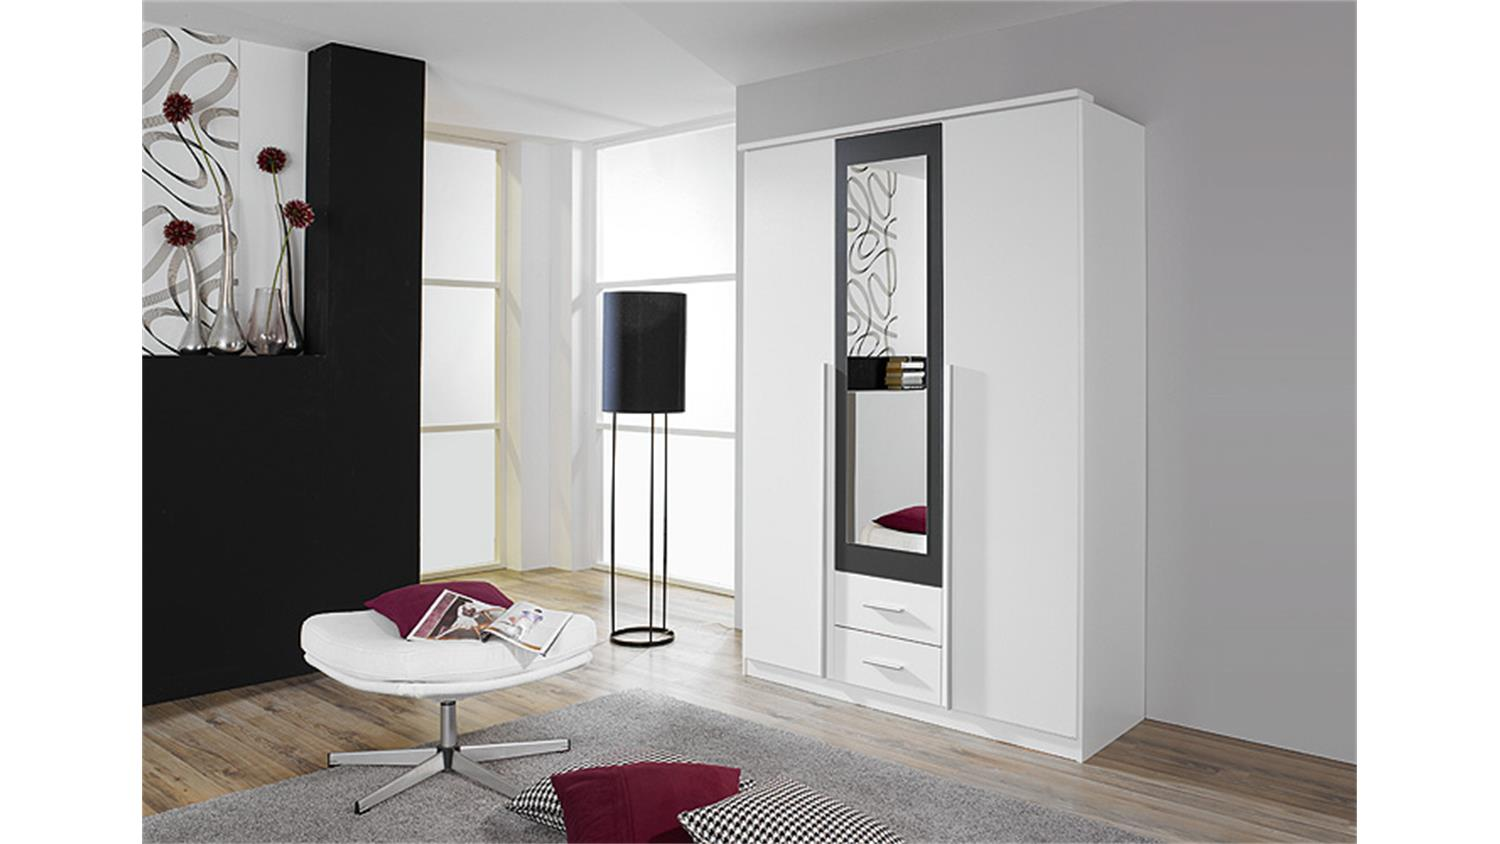 kleiderschrank wei schwarz mit spiegel. Black Bedroom Furniture Sets. Home Design Ideas